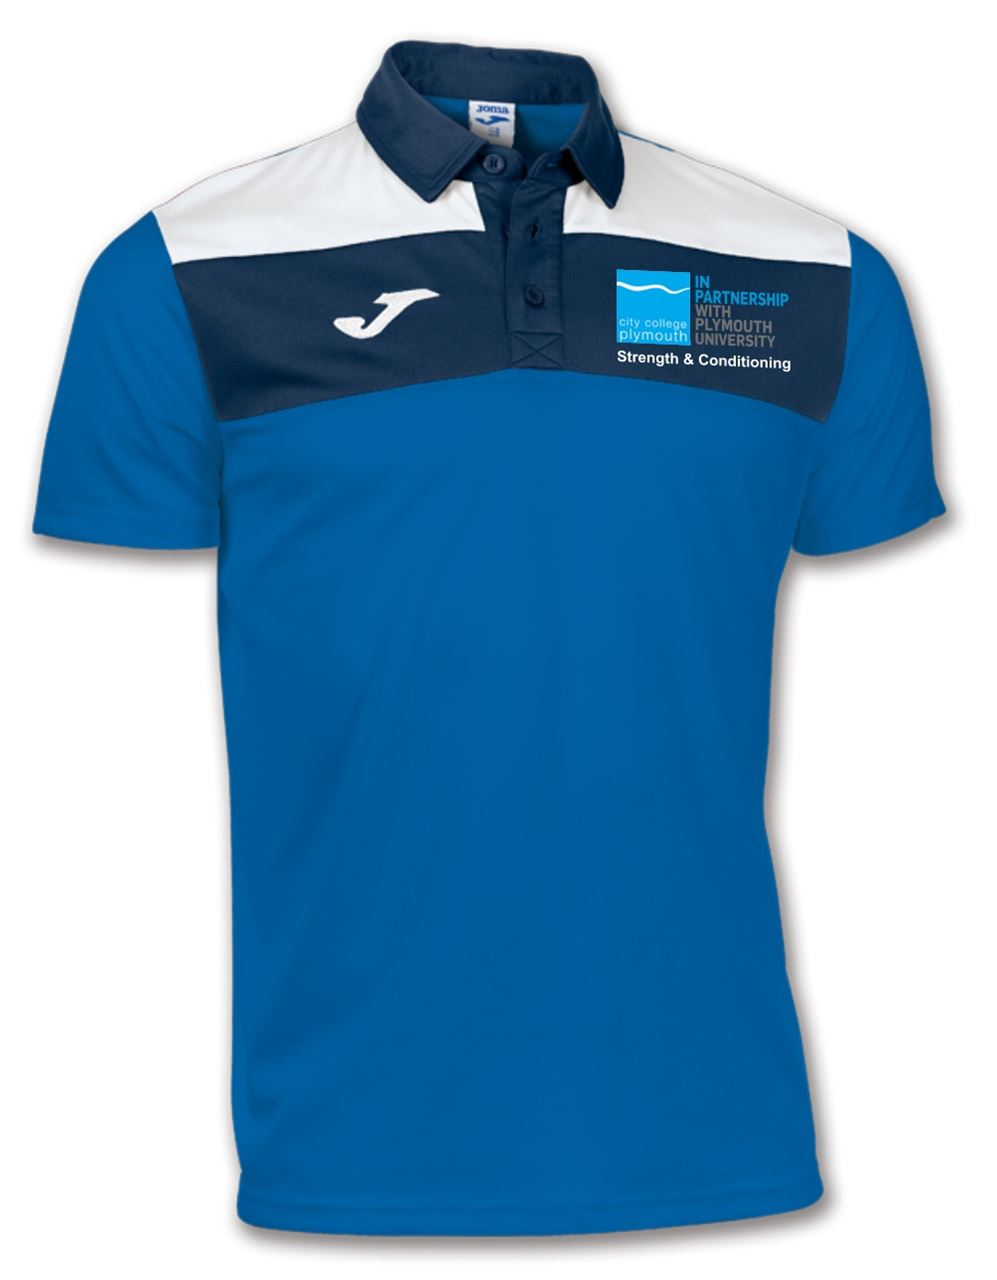 Strength & Conditioning Polo Shirt